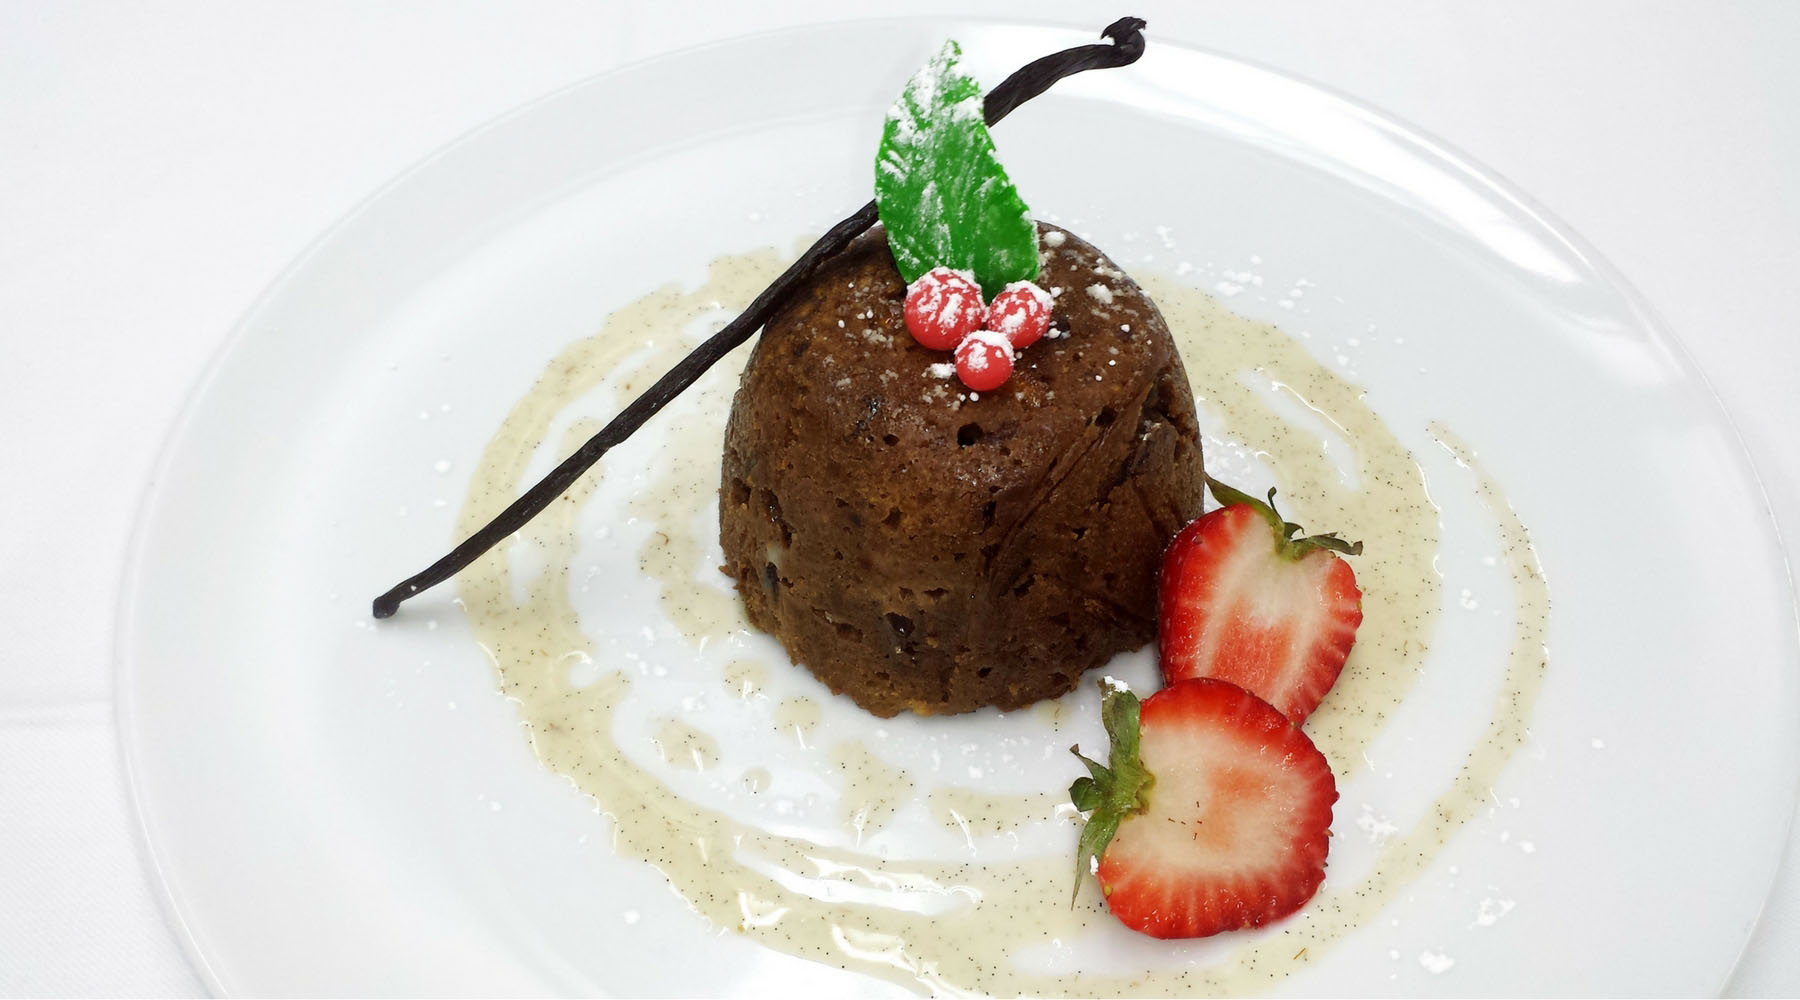 Azamara's Warm English Christmas pudding with Brandy Crème Anglaise